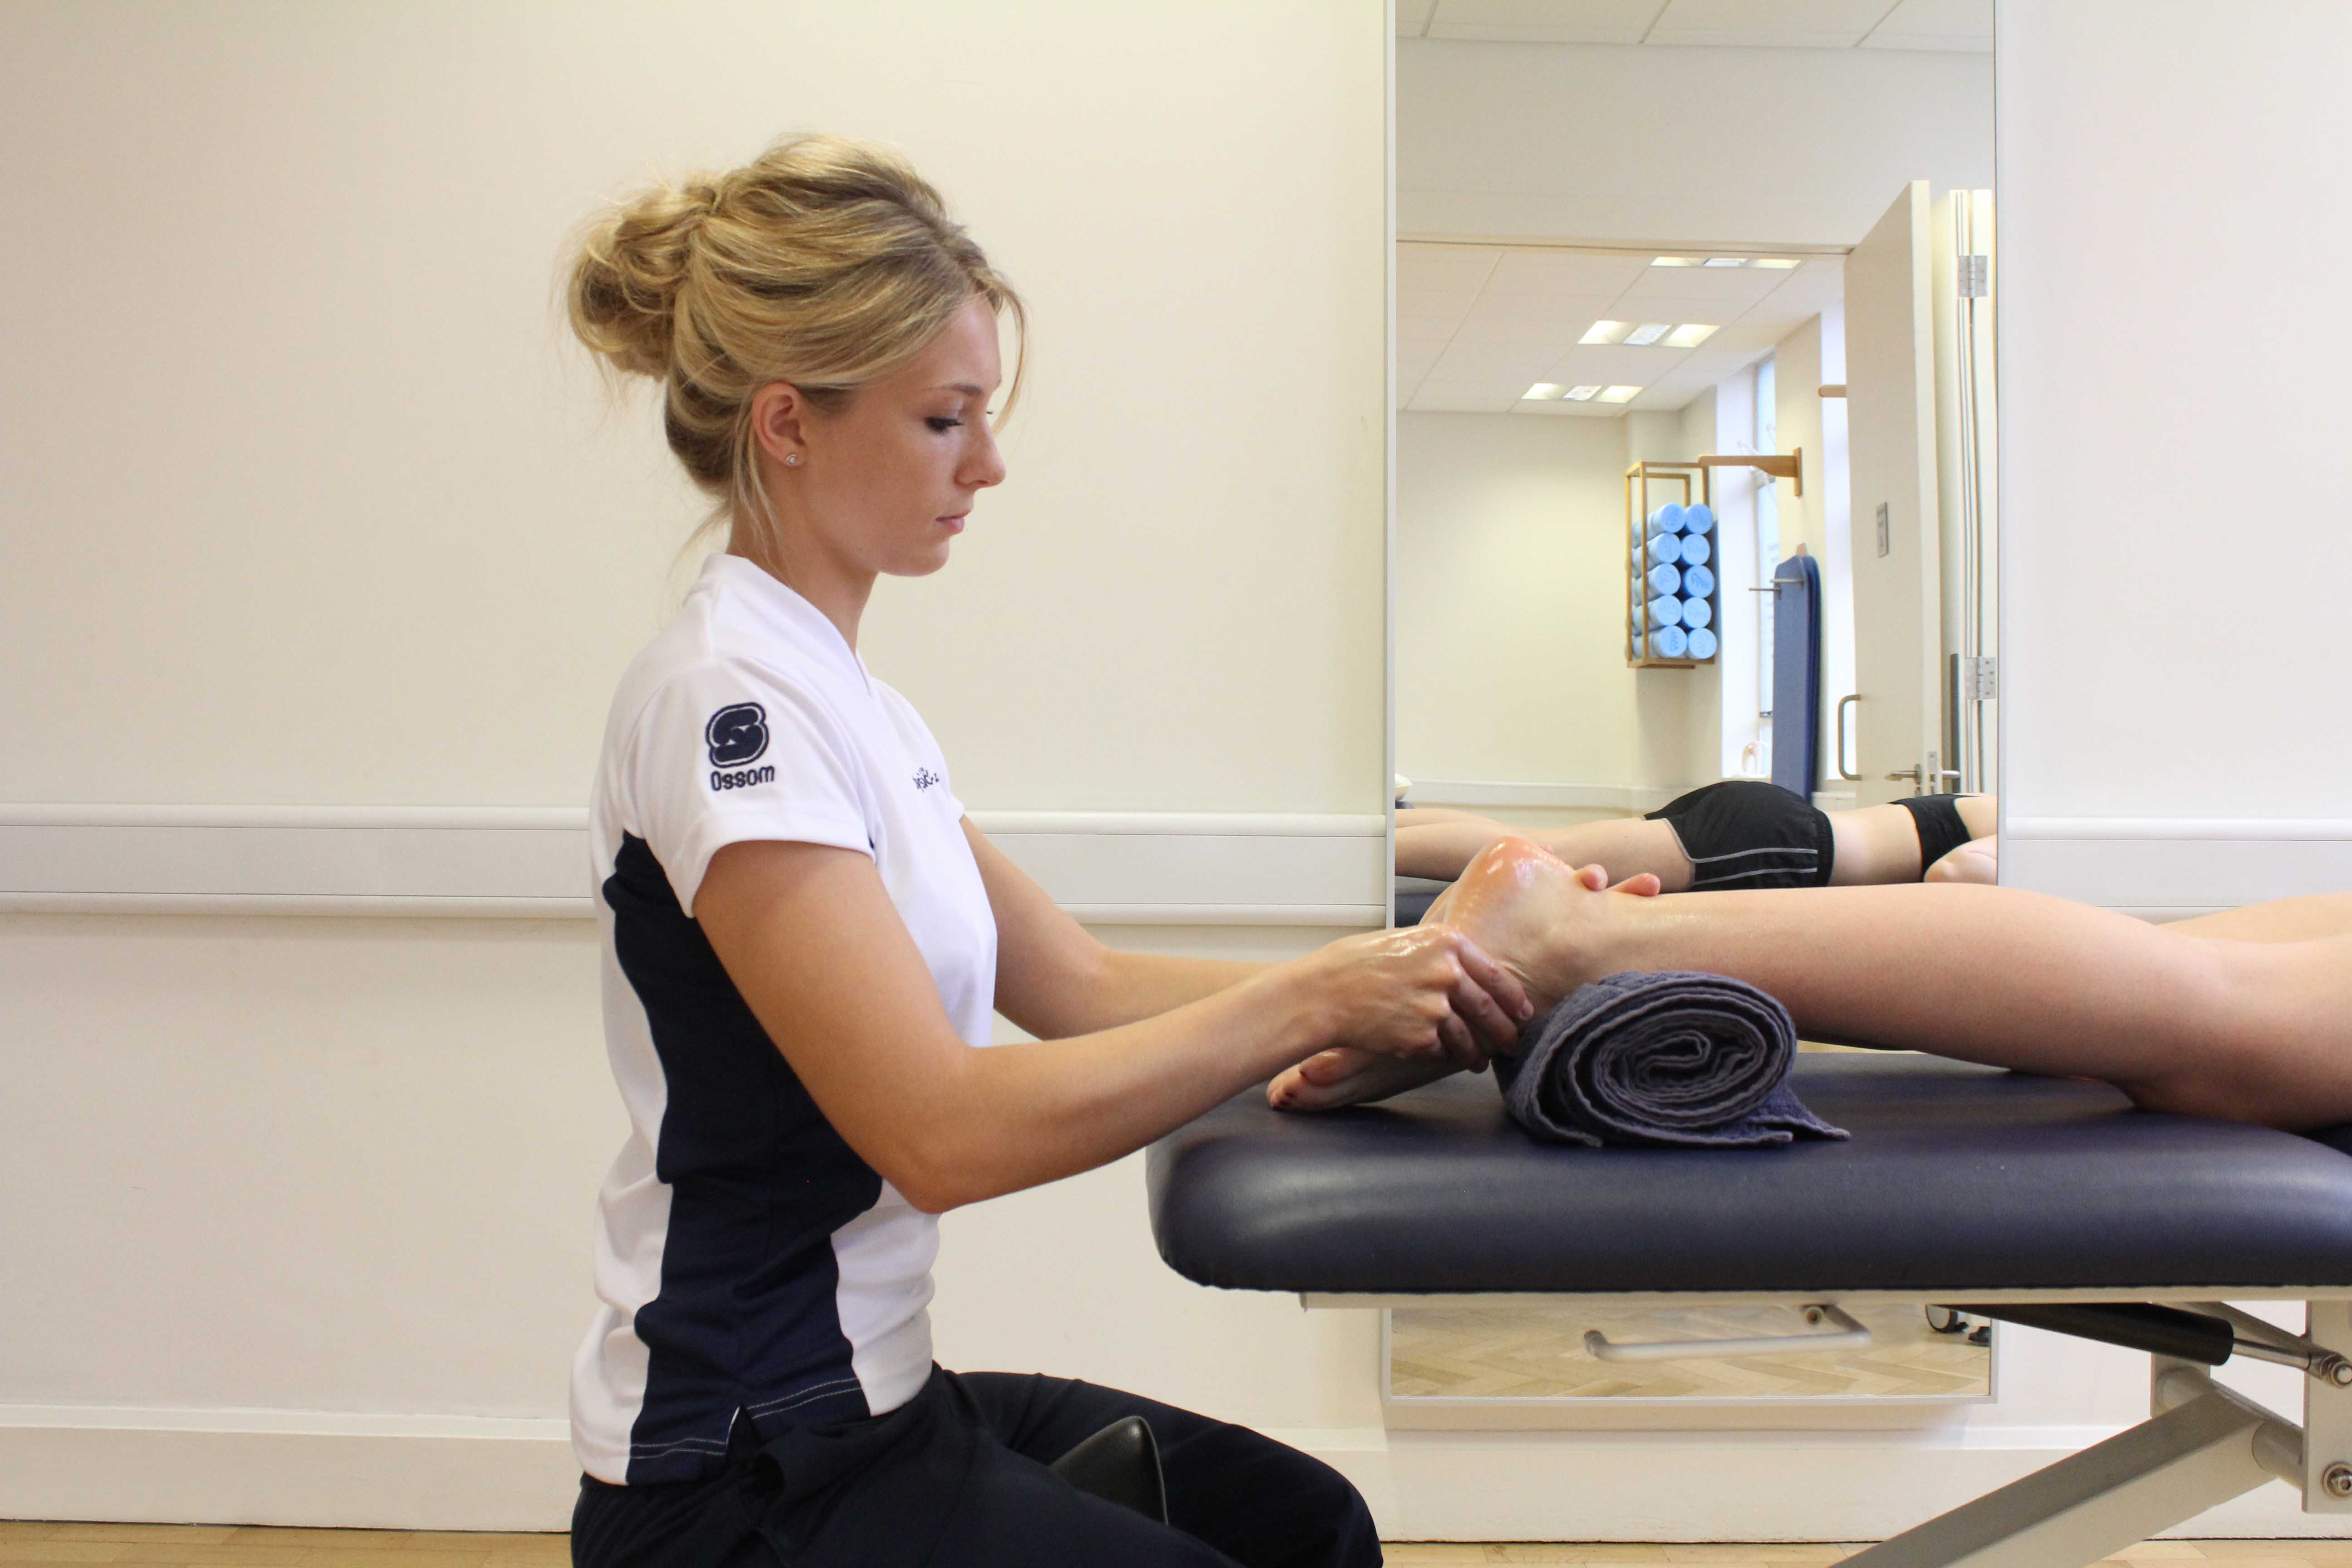 Soft tissue massage and mobilisations of the bones and connective tissues in the foot by an experienced therapist